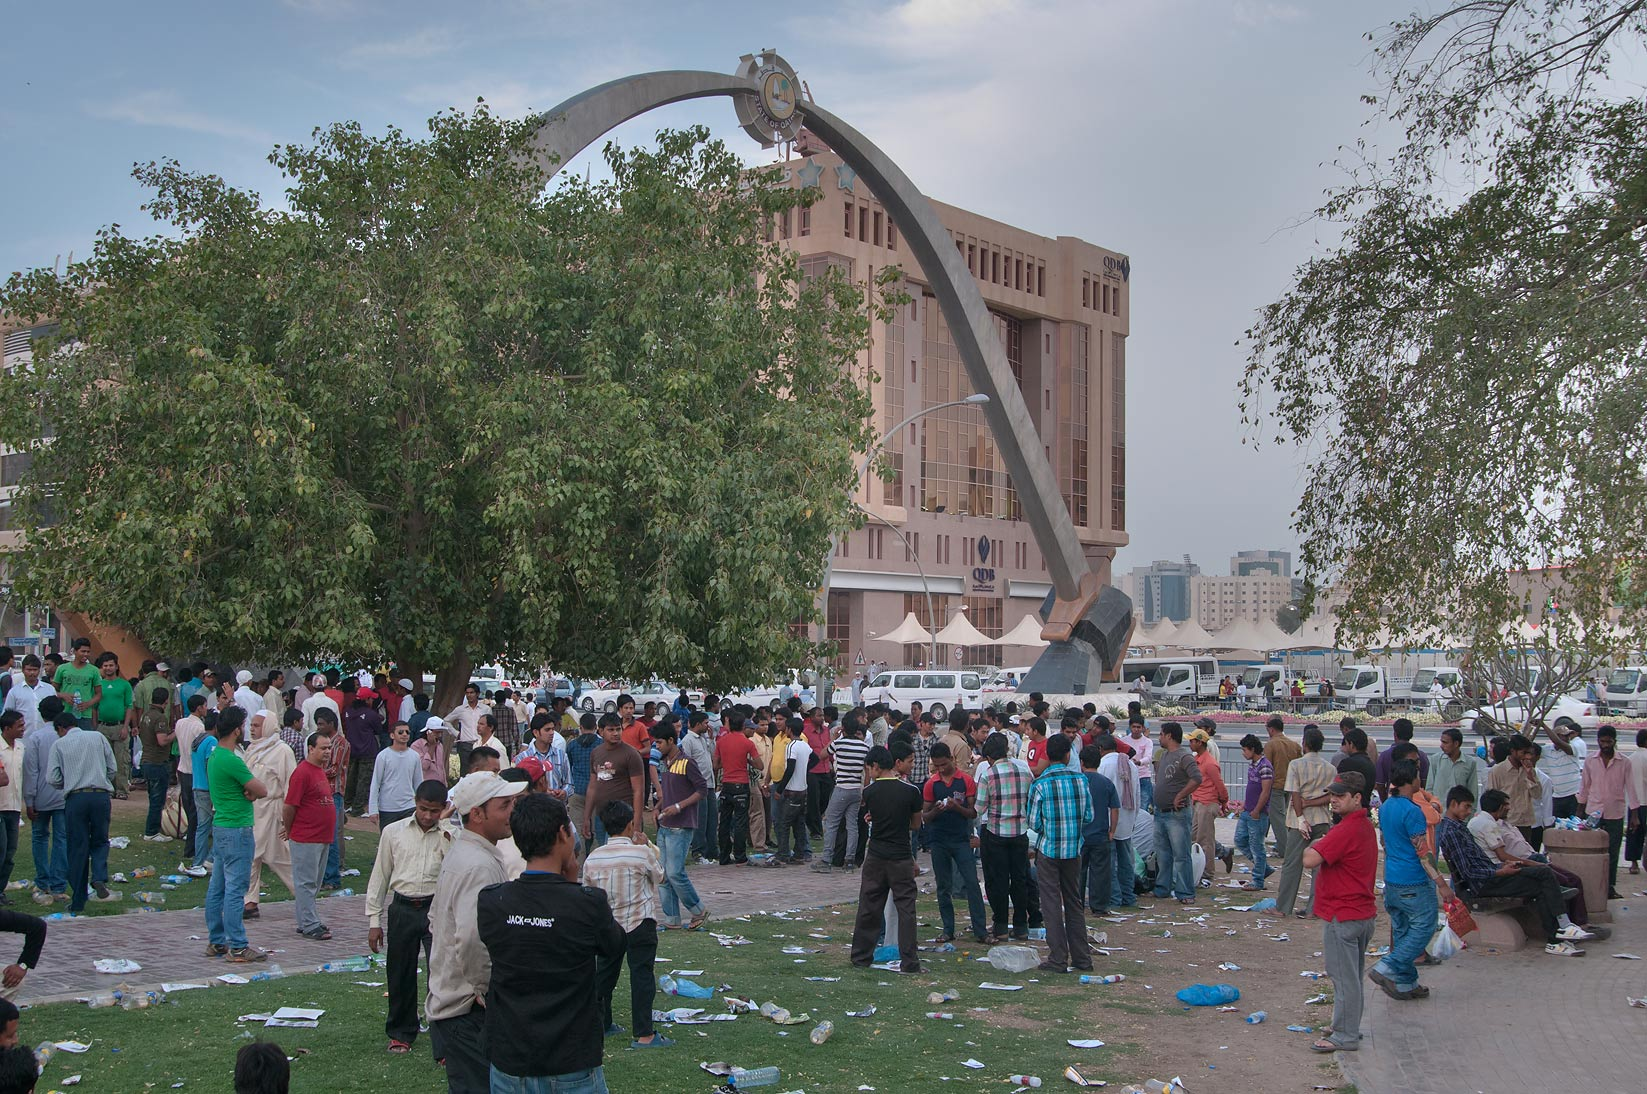 Migrant workers crowding on a lawn at Grand Hamad...Al Ghanim on Friday. Doha, Qatar